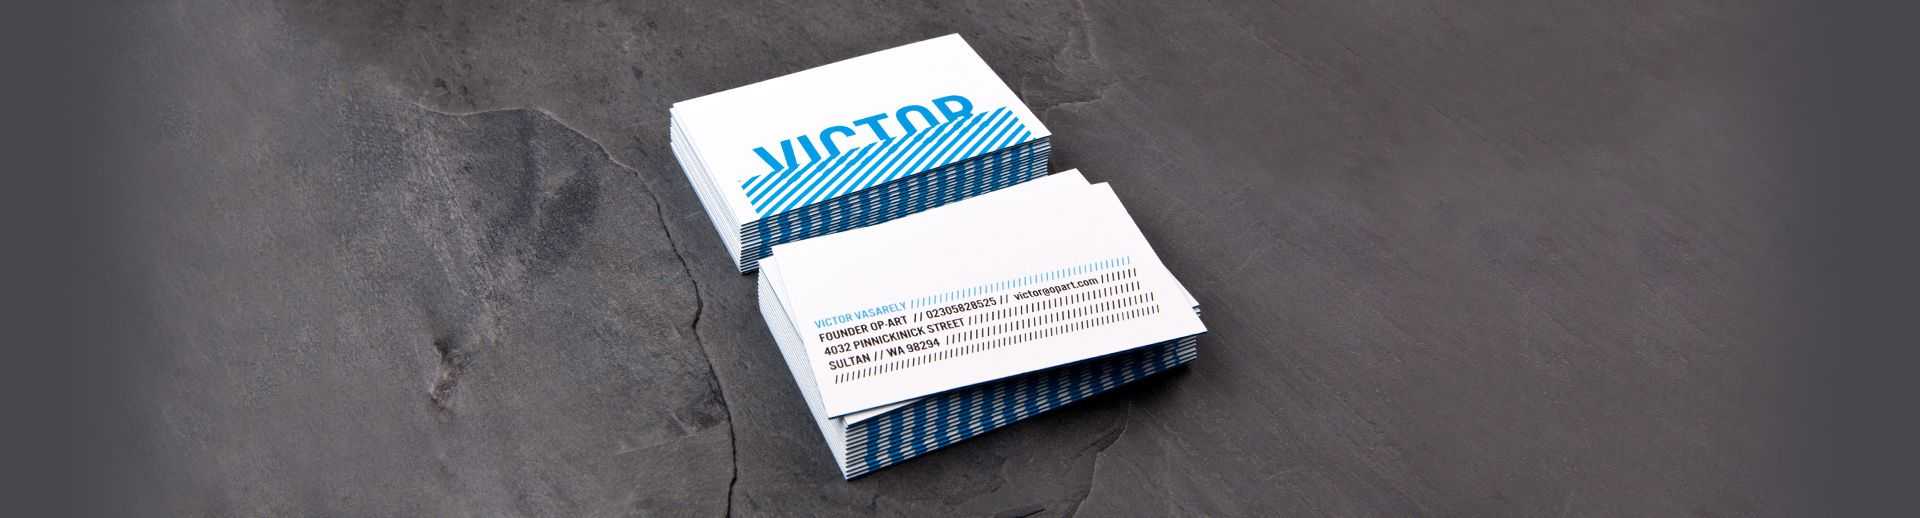 Luxury Business Cards Extra Thick Premium Business Cards Luxe Business Cards Thick Business Cards Business Card Inspiration